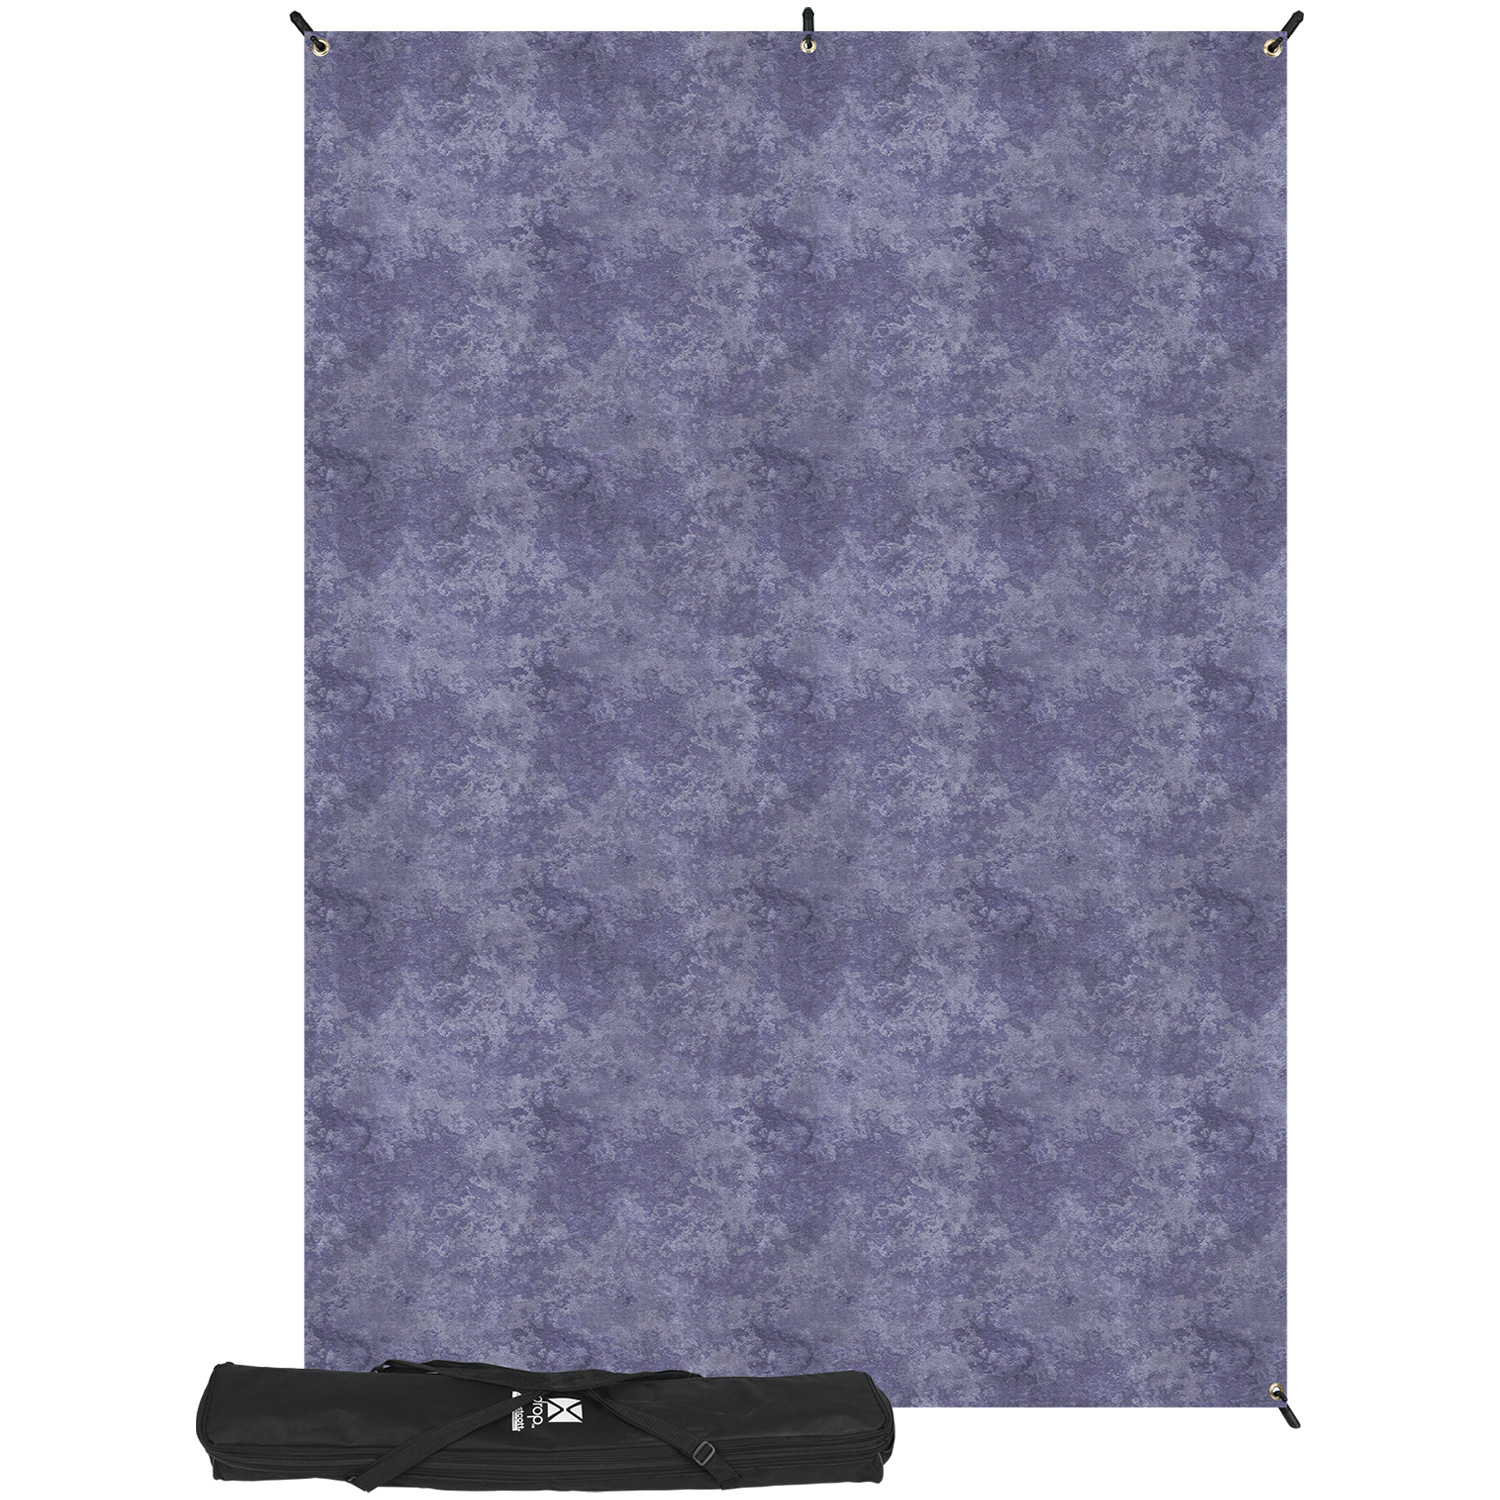 X-Drop Kit with 5' x 7' Backdrop (Slate)